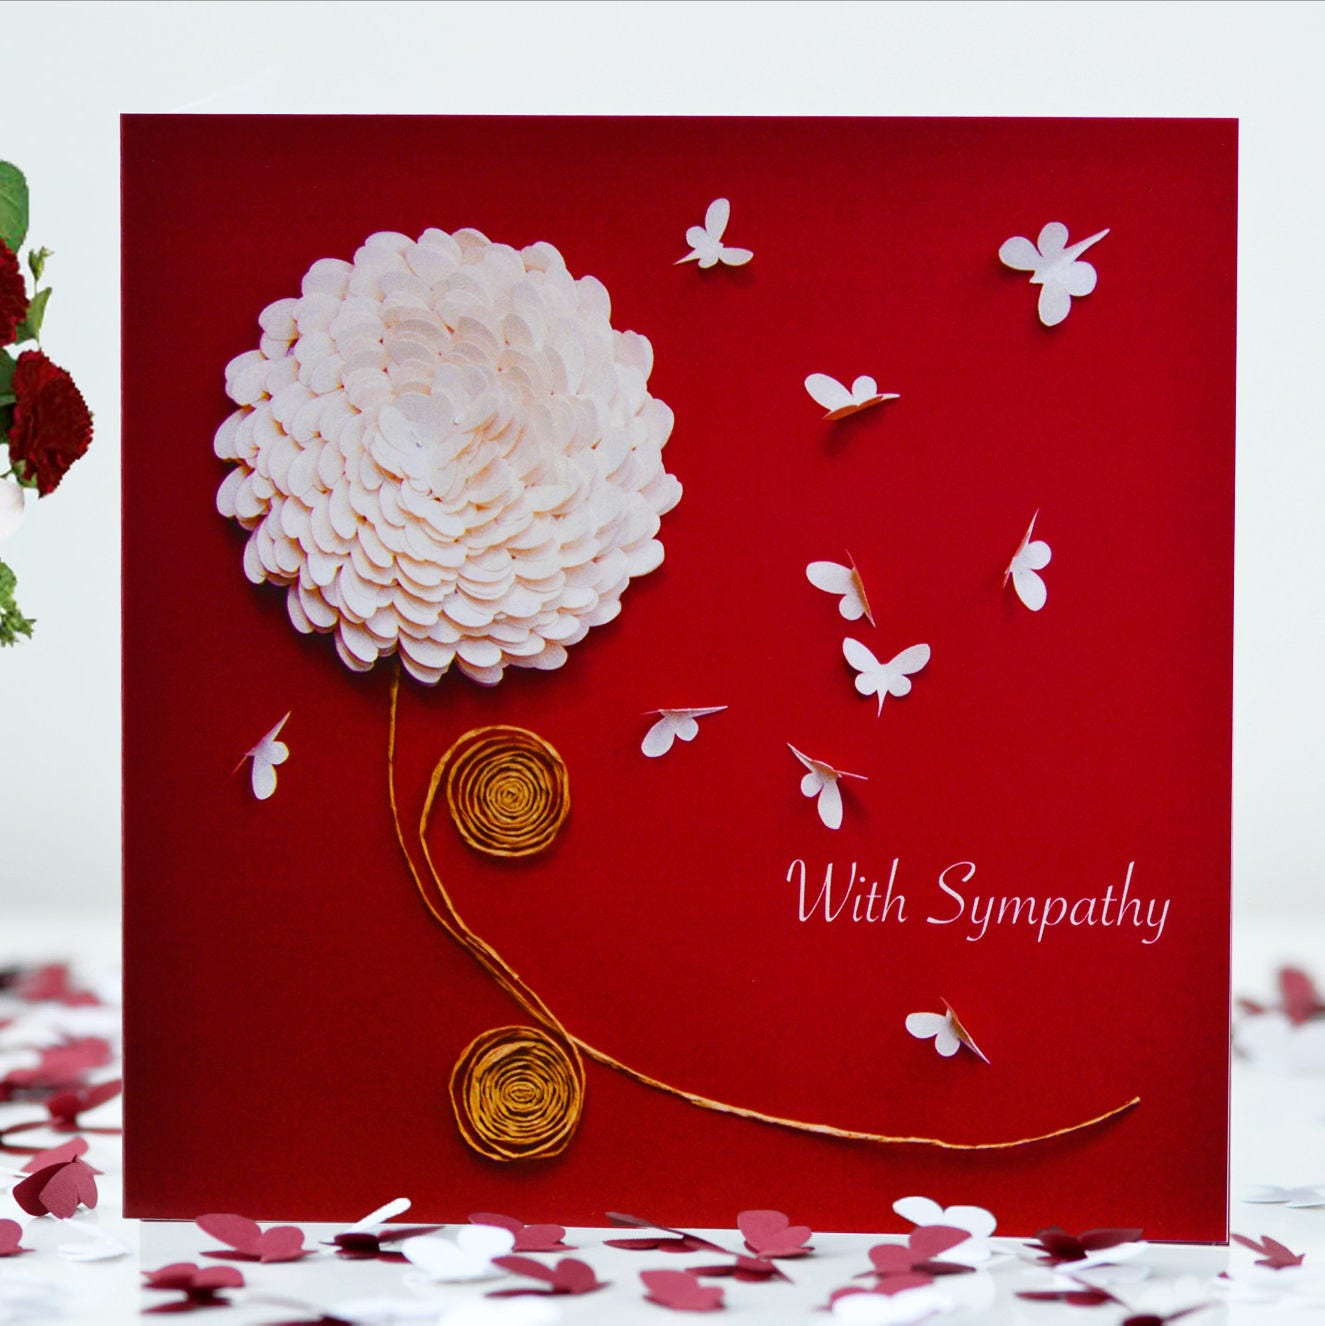 With Sympathy Chrysanthemum Butterfly Card Flower With